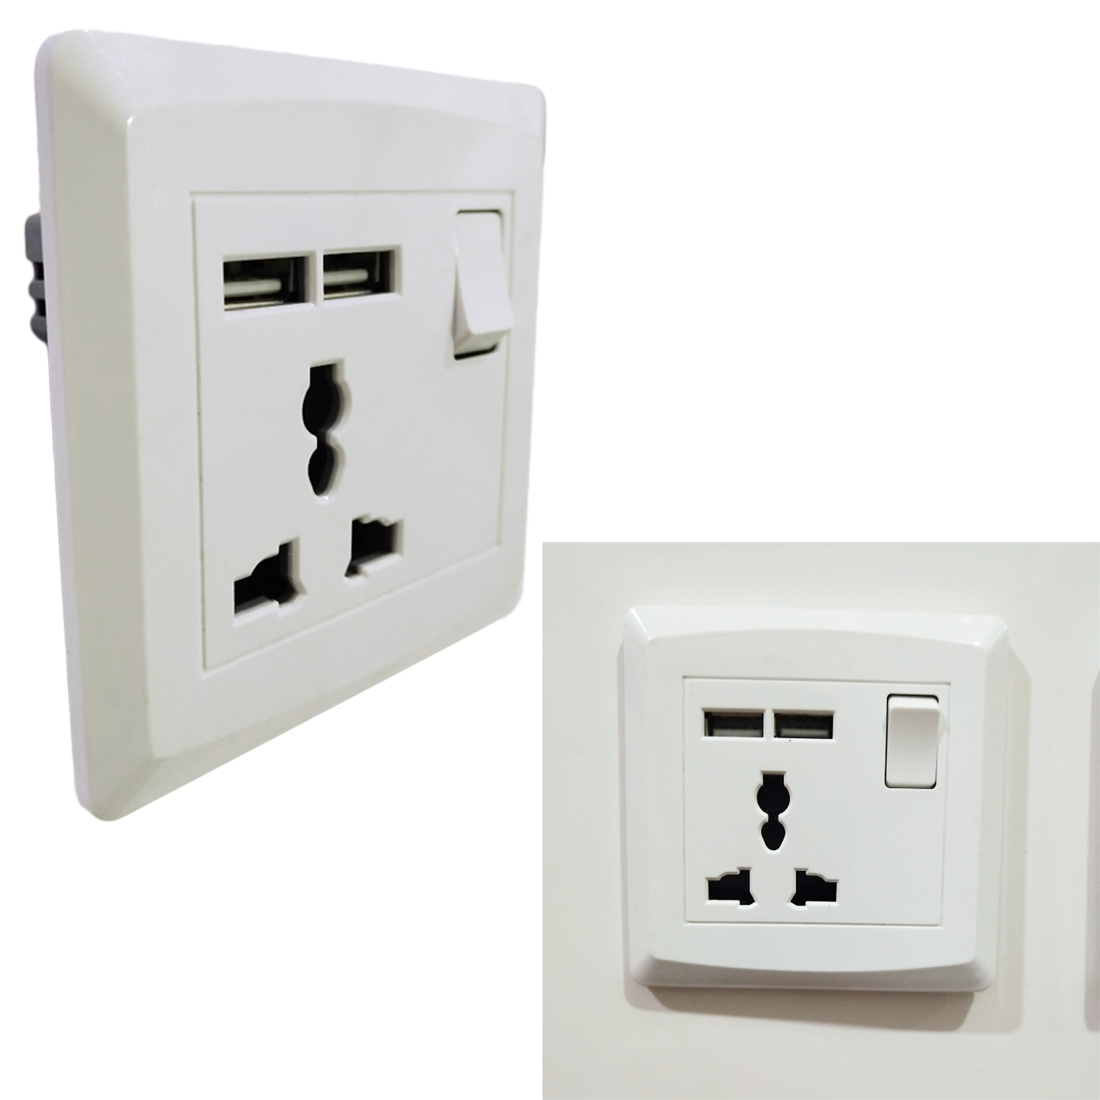 86*86mm AC220-250V 13A USB charging panel socket Household office wall switch socket British switch socket